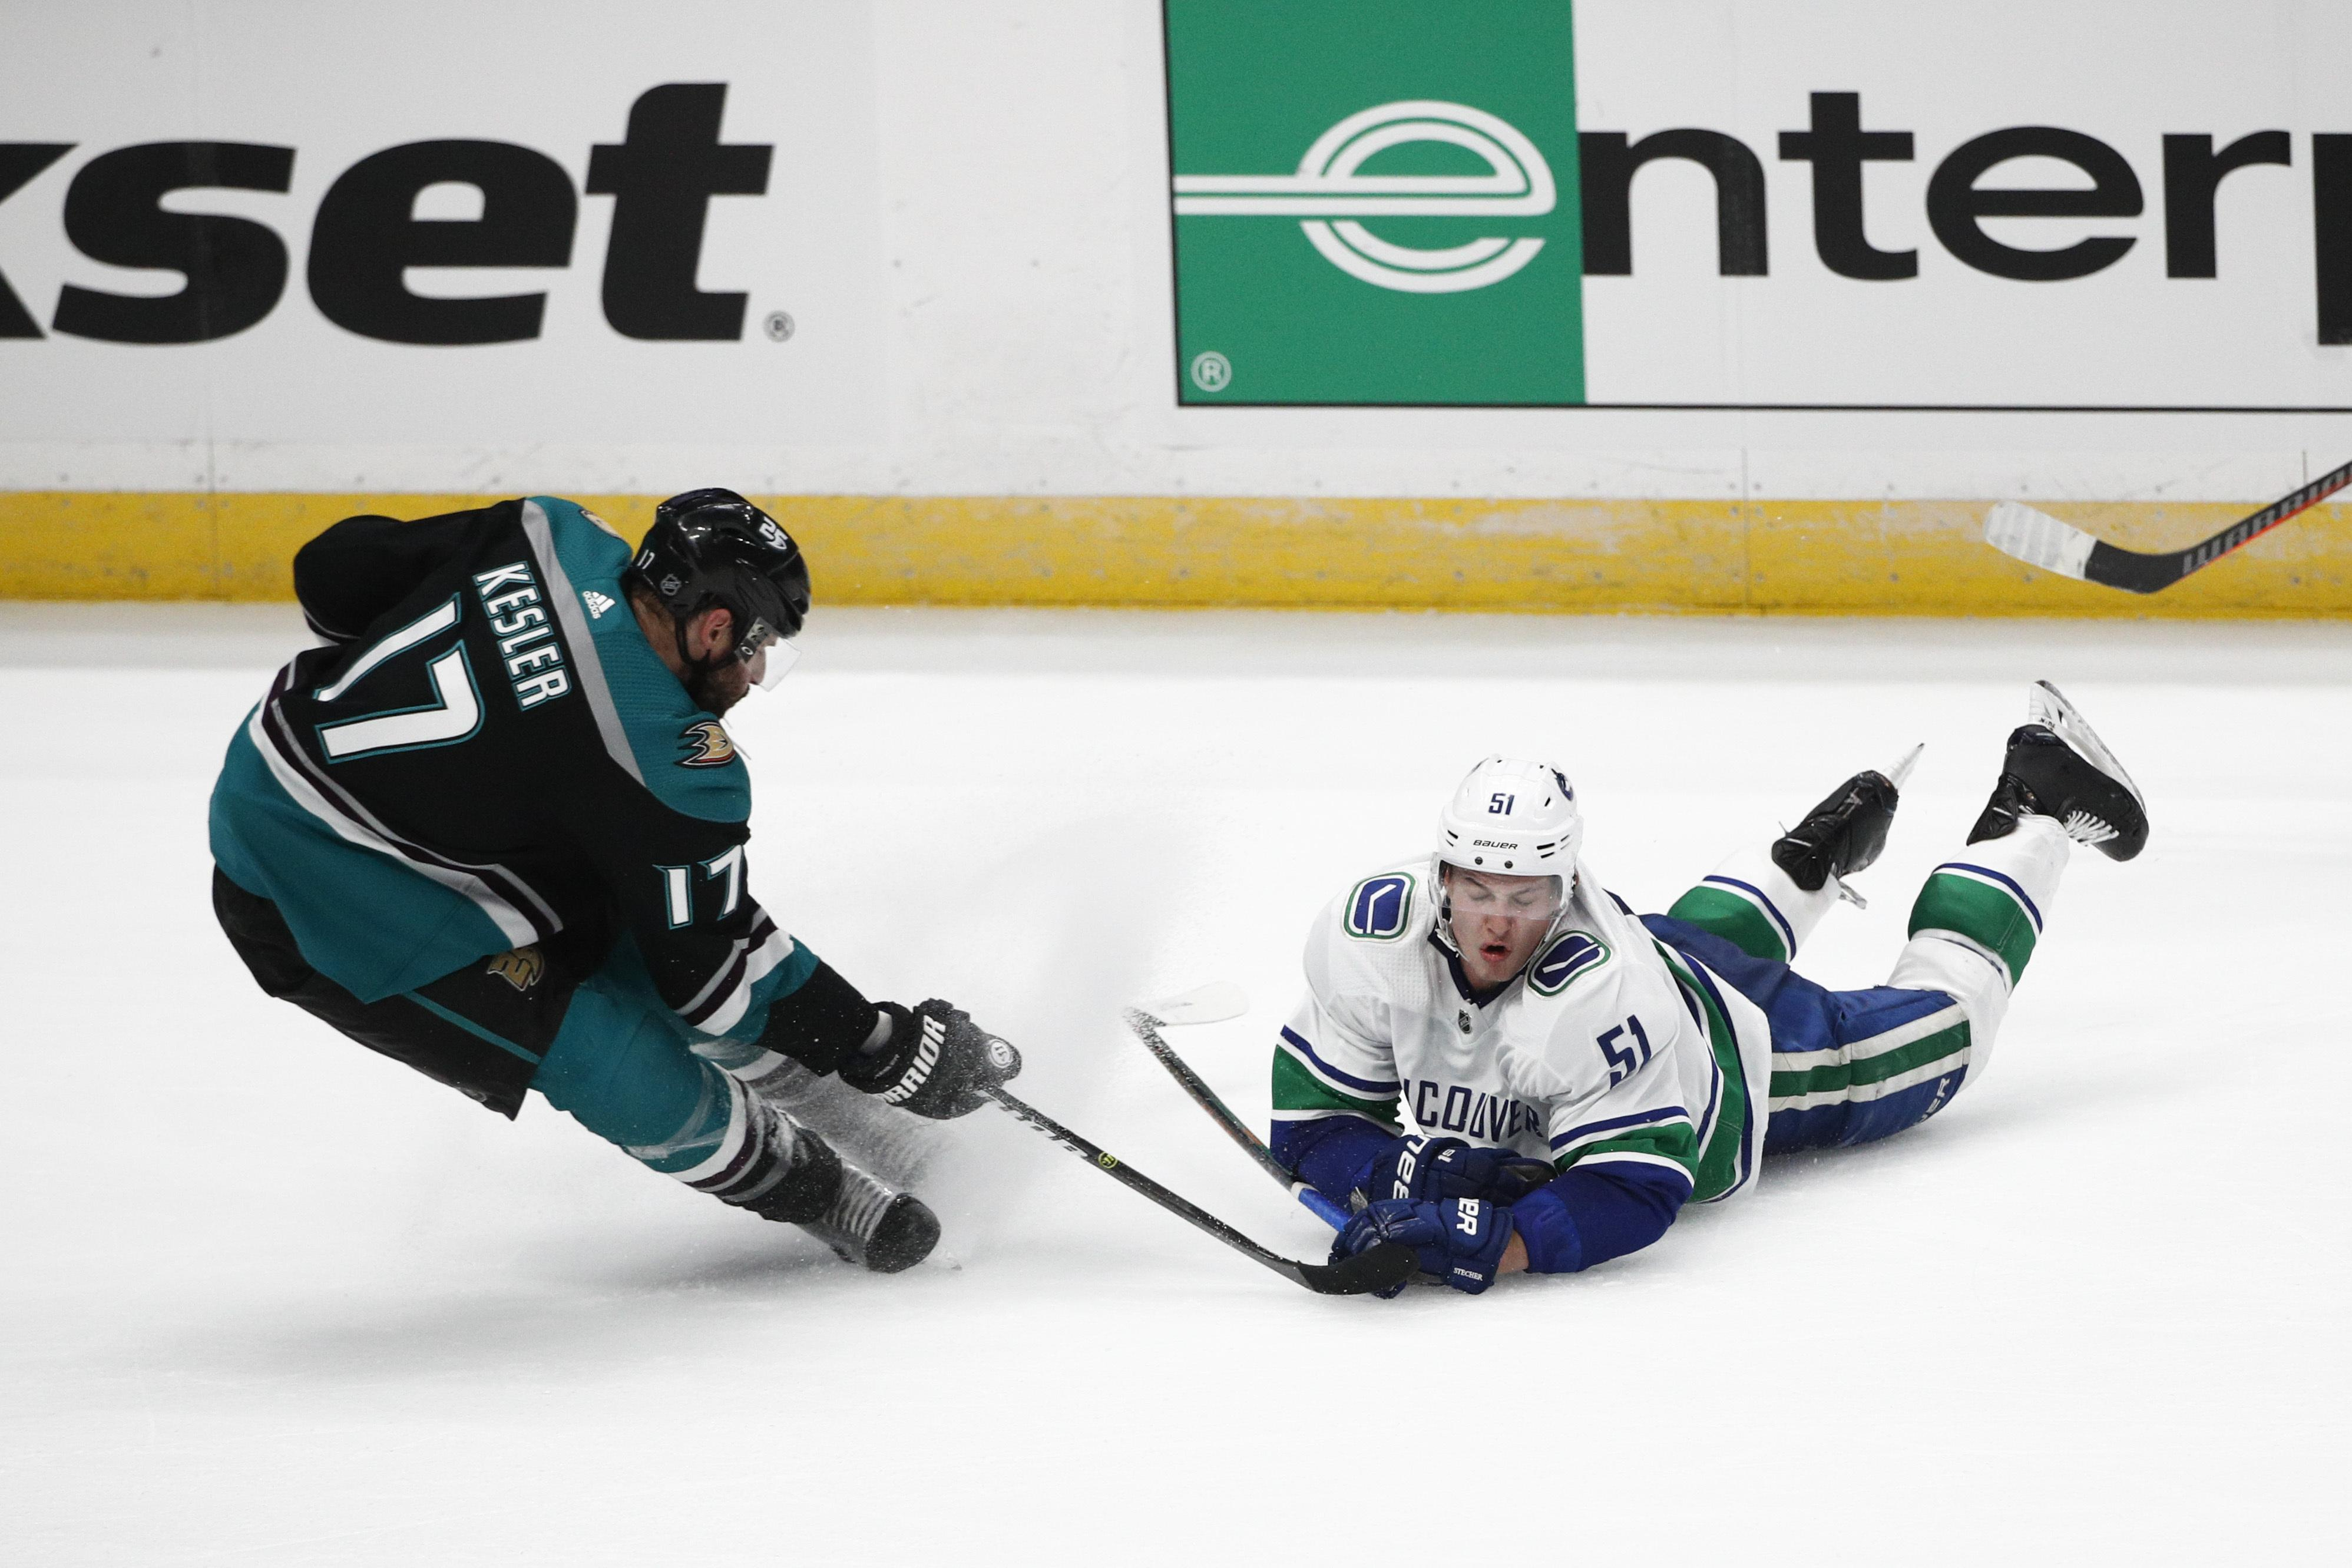 Nhl Roundup Kevin Boyle Gets Shutout Ducks Top Canucks 1 0 In Bob